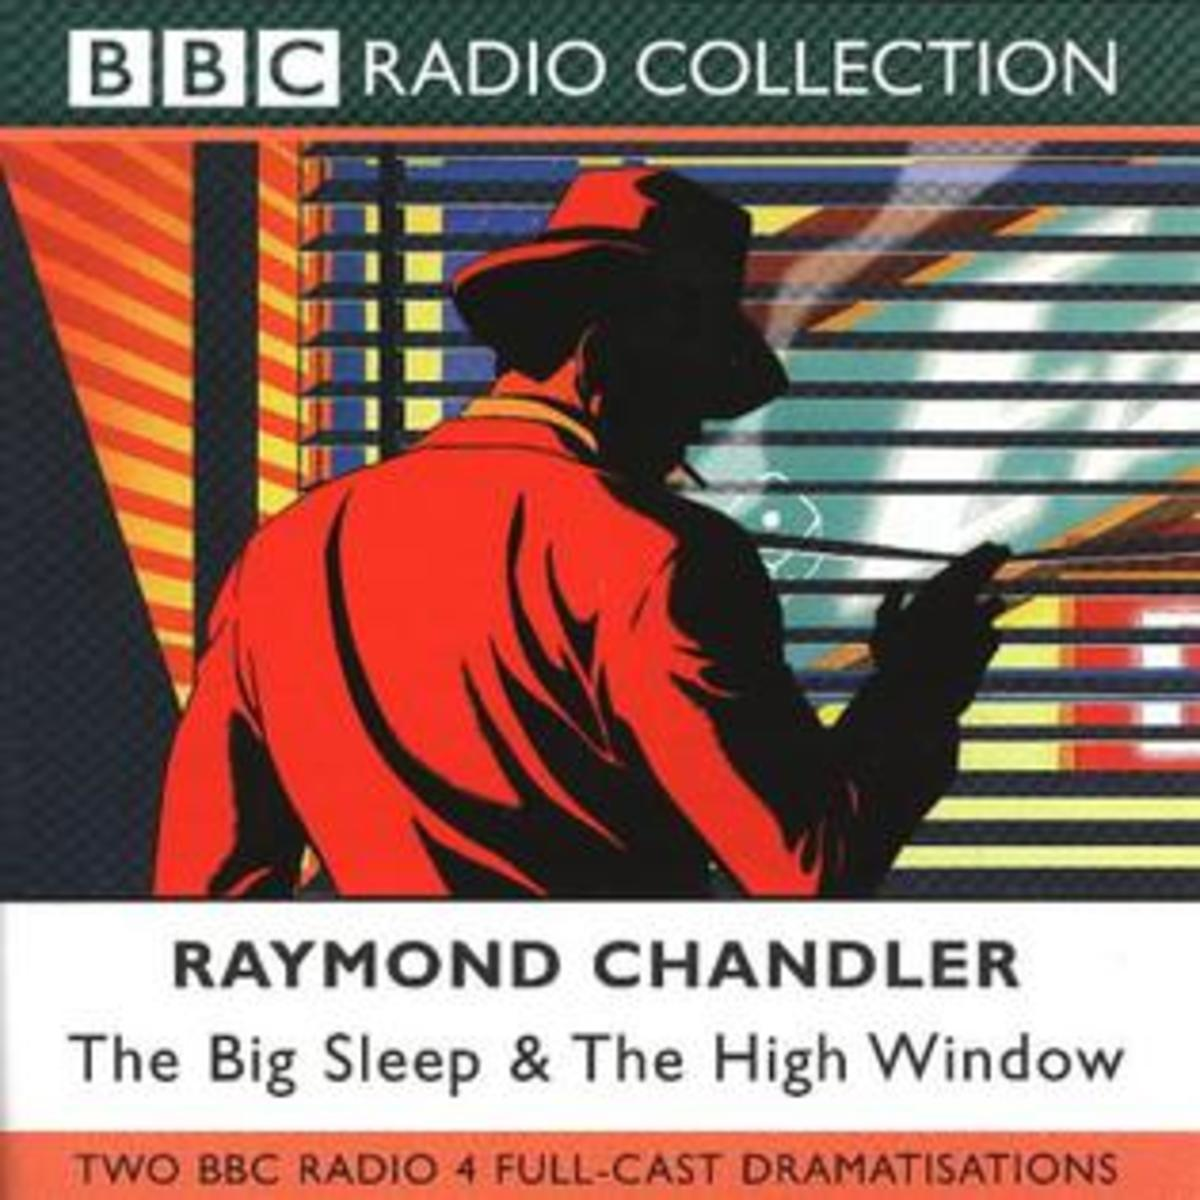 sample from the cover of the BBC radio dramatizations of Chandler's work, including The Big Sleep.